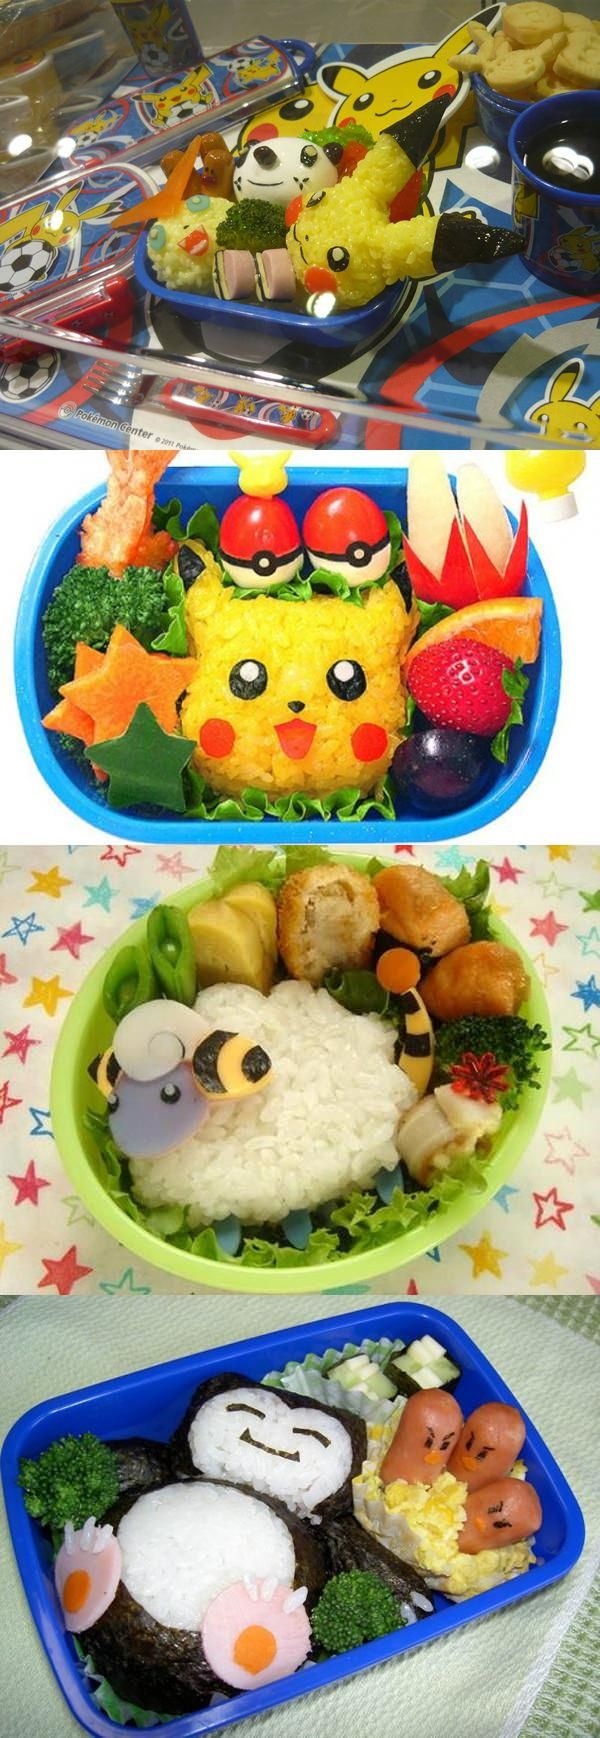 Pokemon Sushi bento box